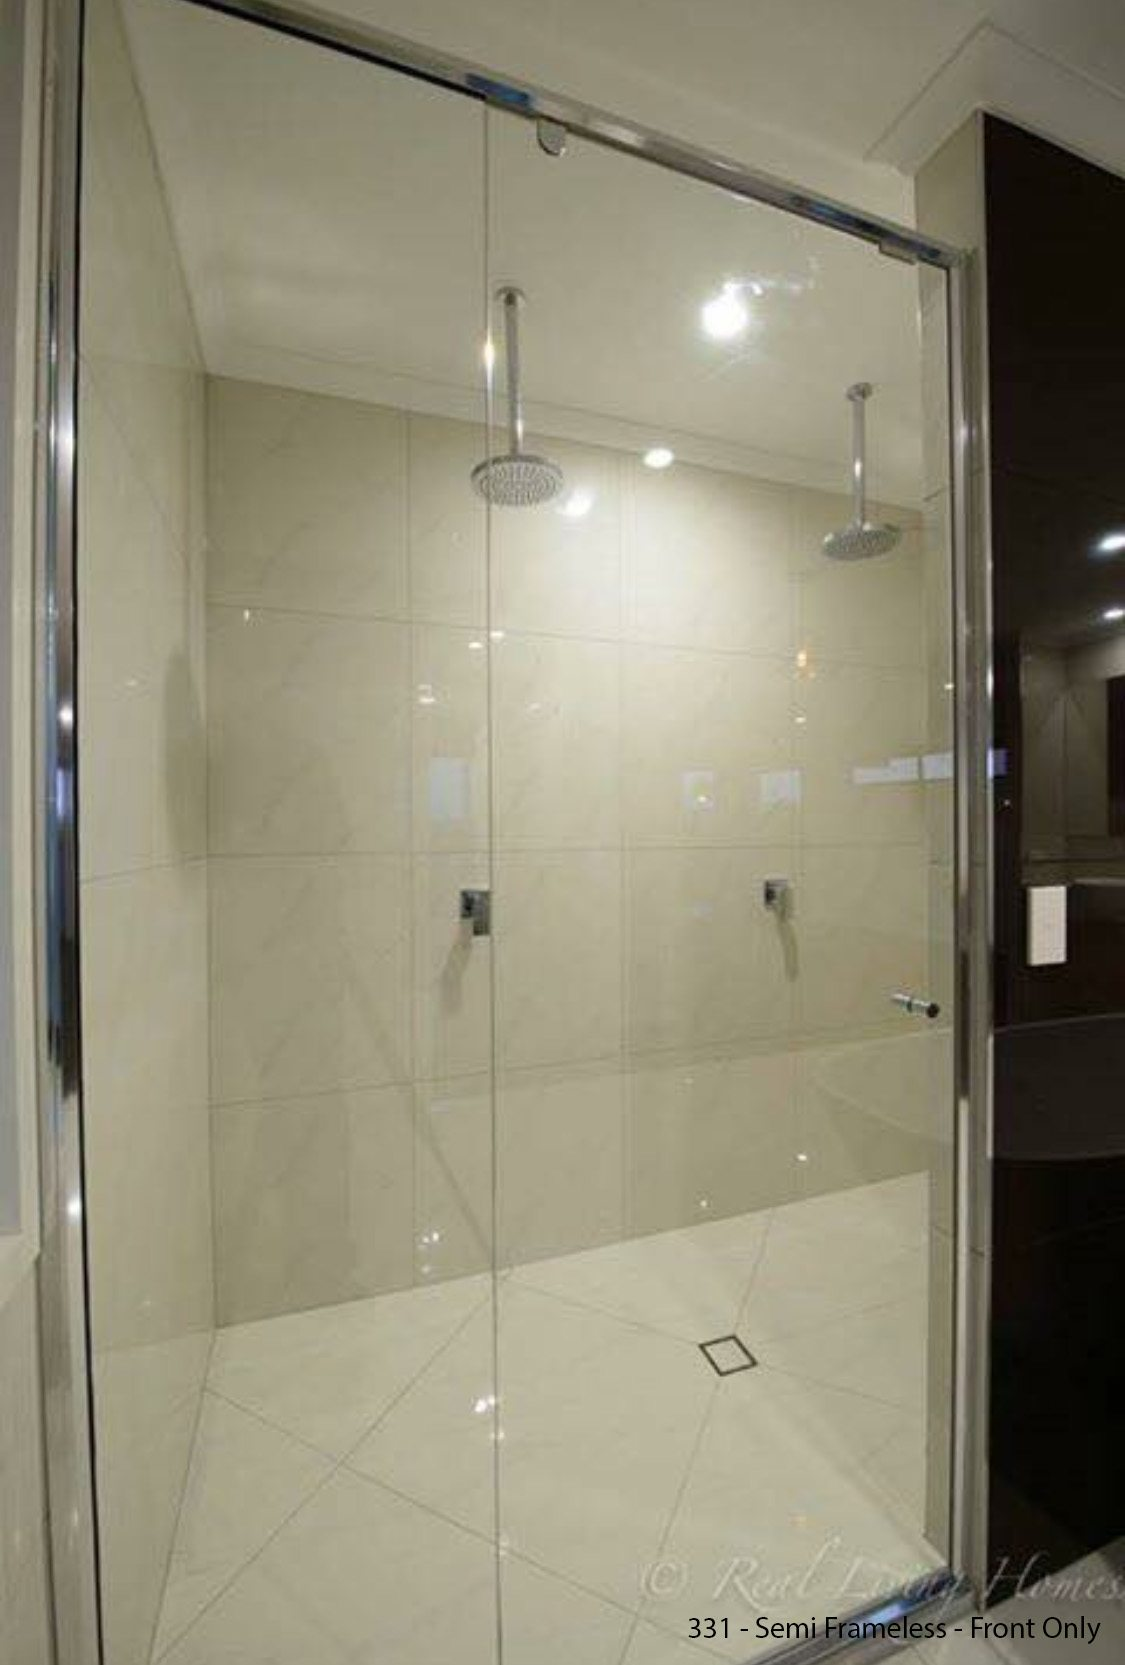 Semi Frameless Shower Screens Ultimate Shower Screen